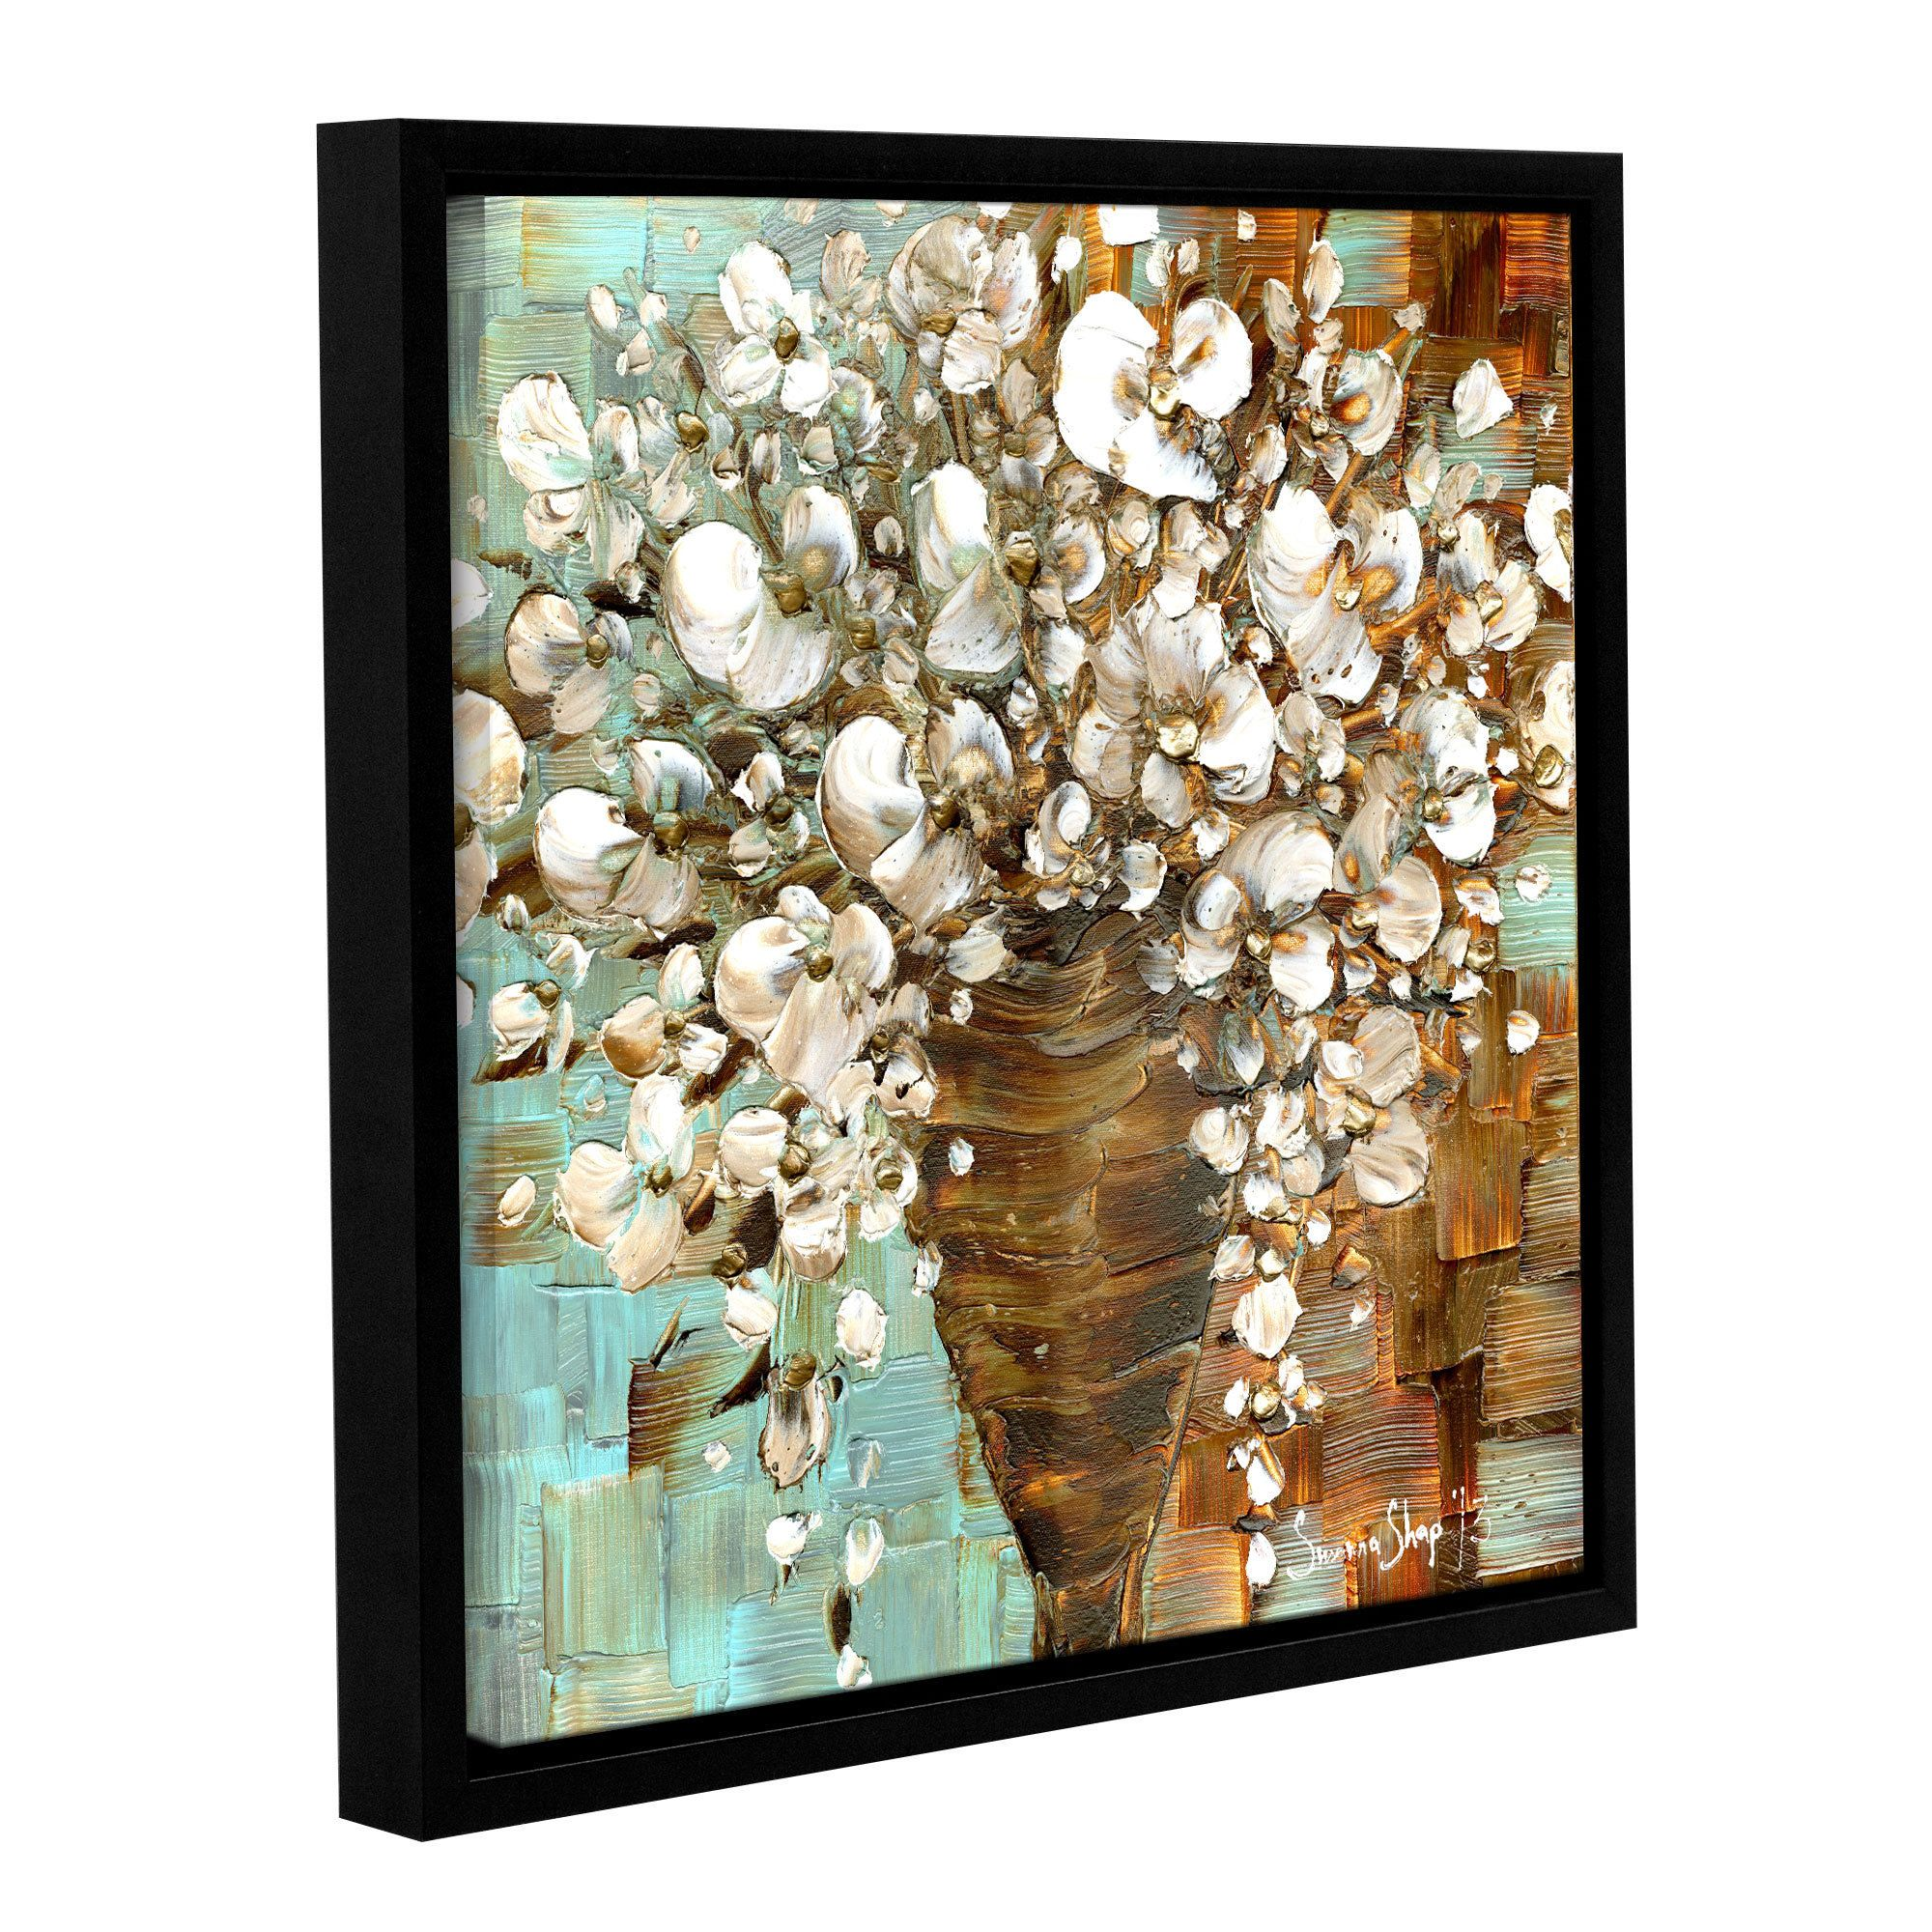 ArtWall Susanna Shaposhnikova's Bouquet, Gallery Wrapped Floater-framed